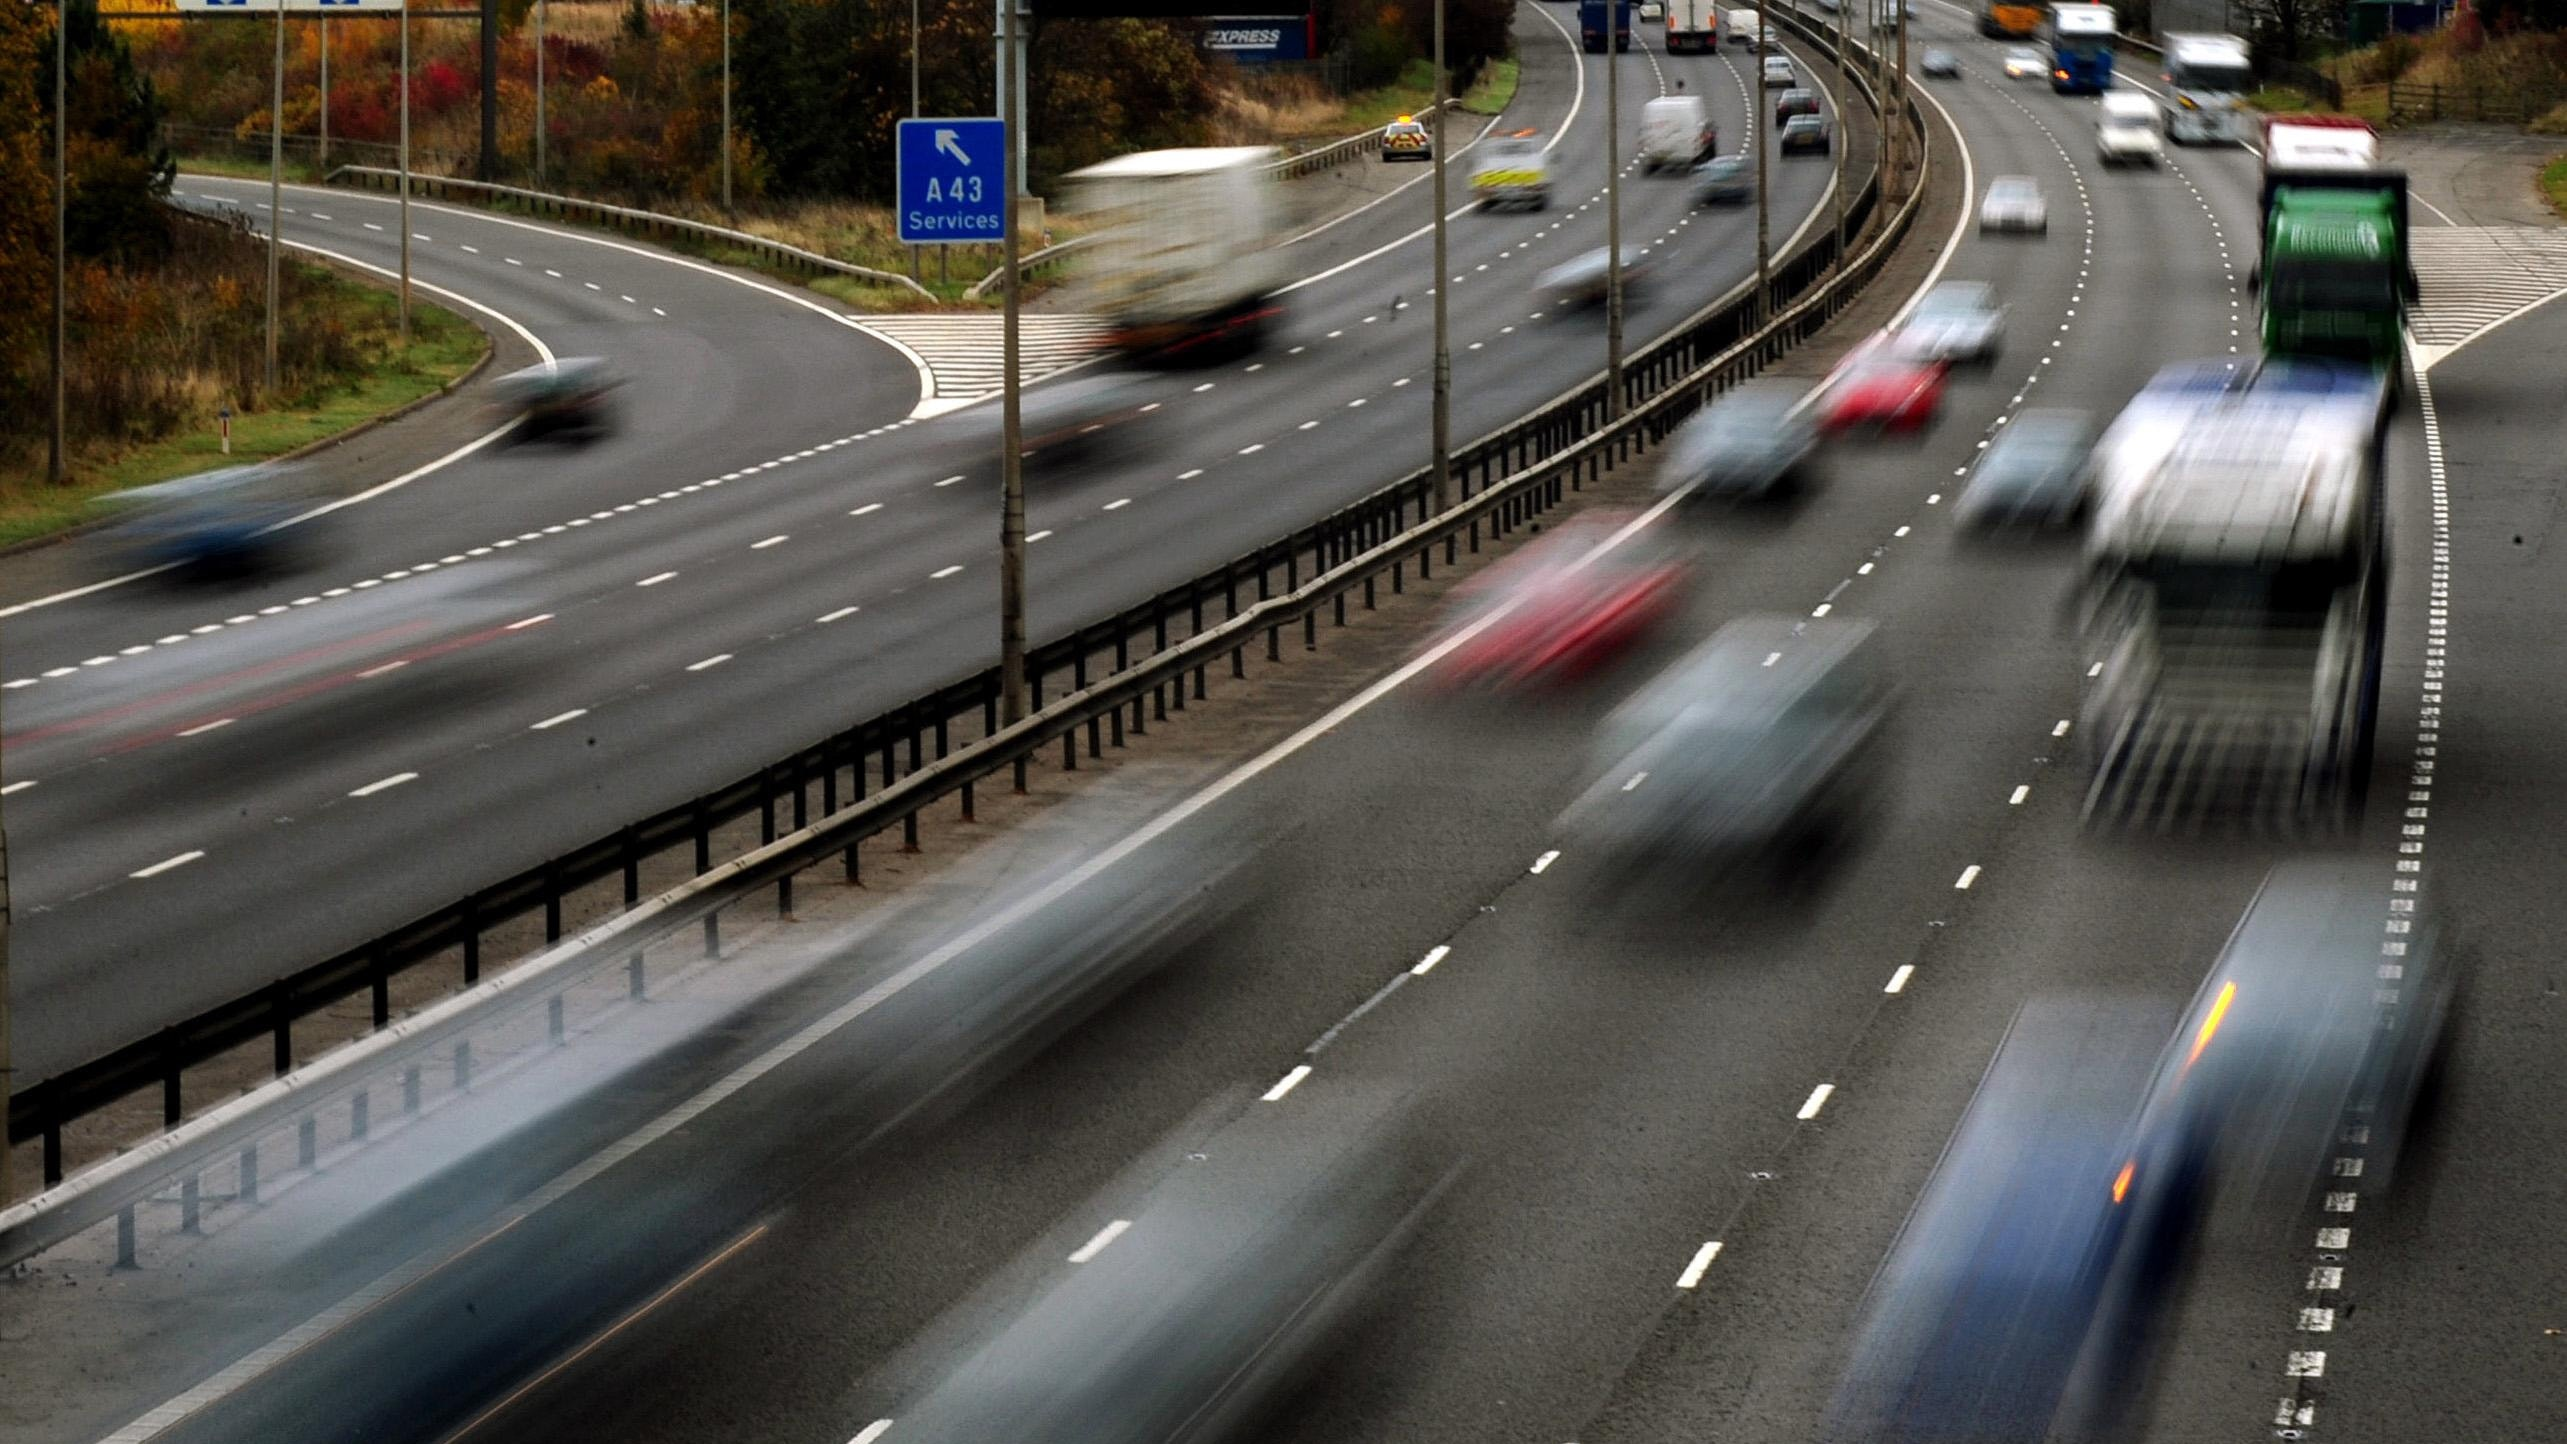 Police should take a 'zero tolerance' approach to speeding